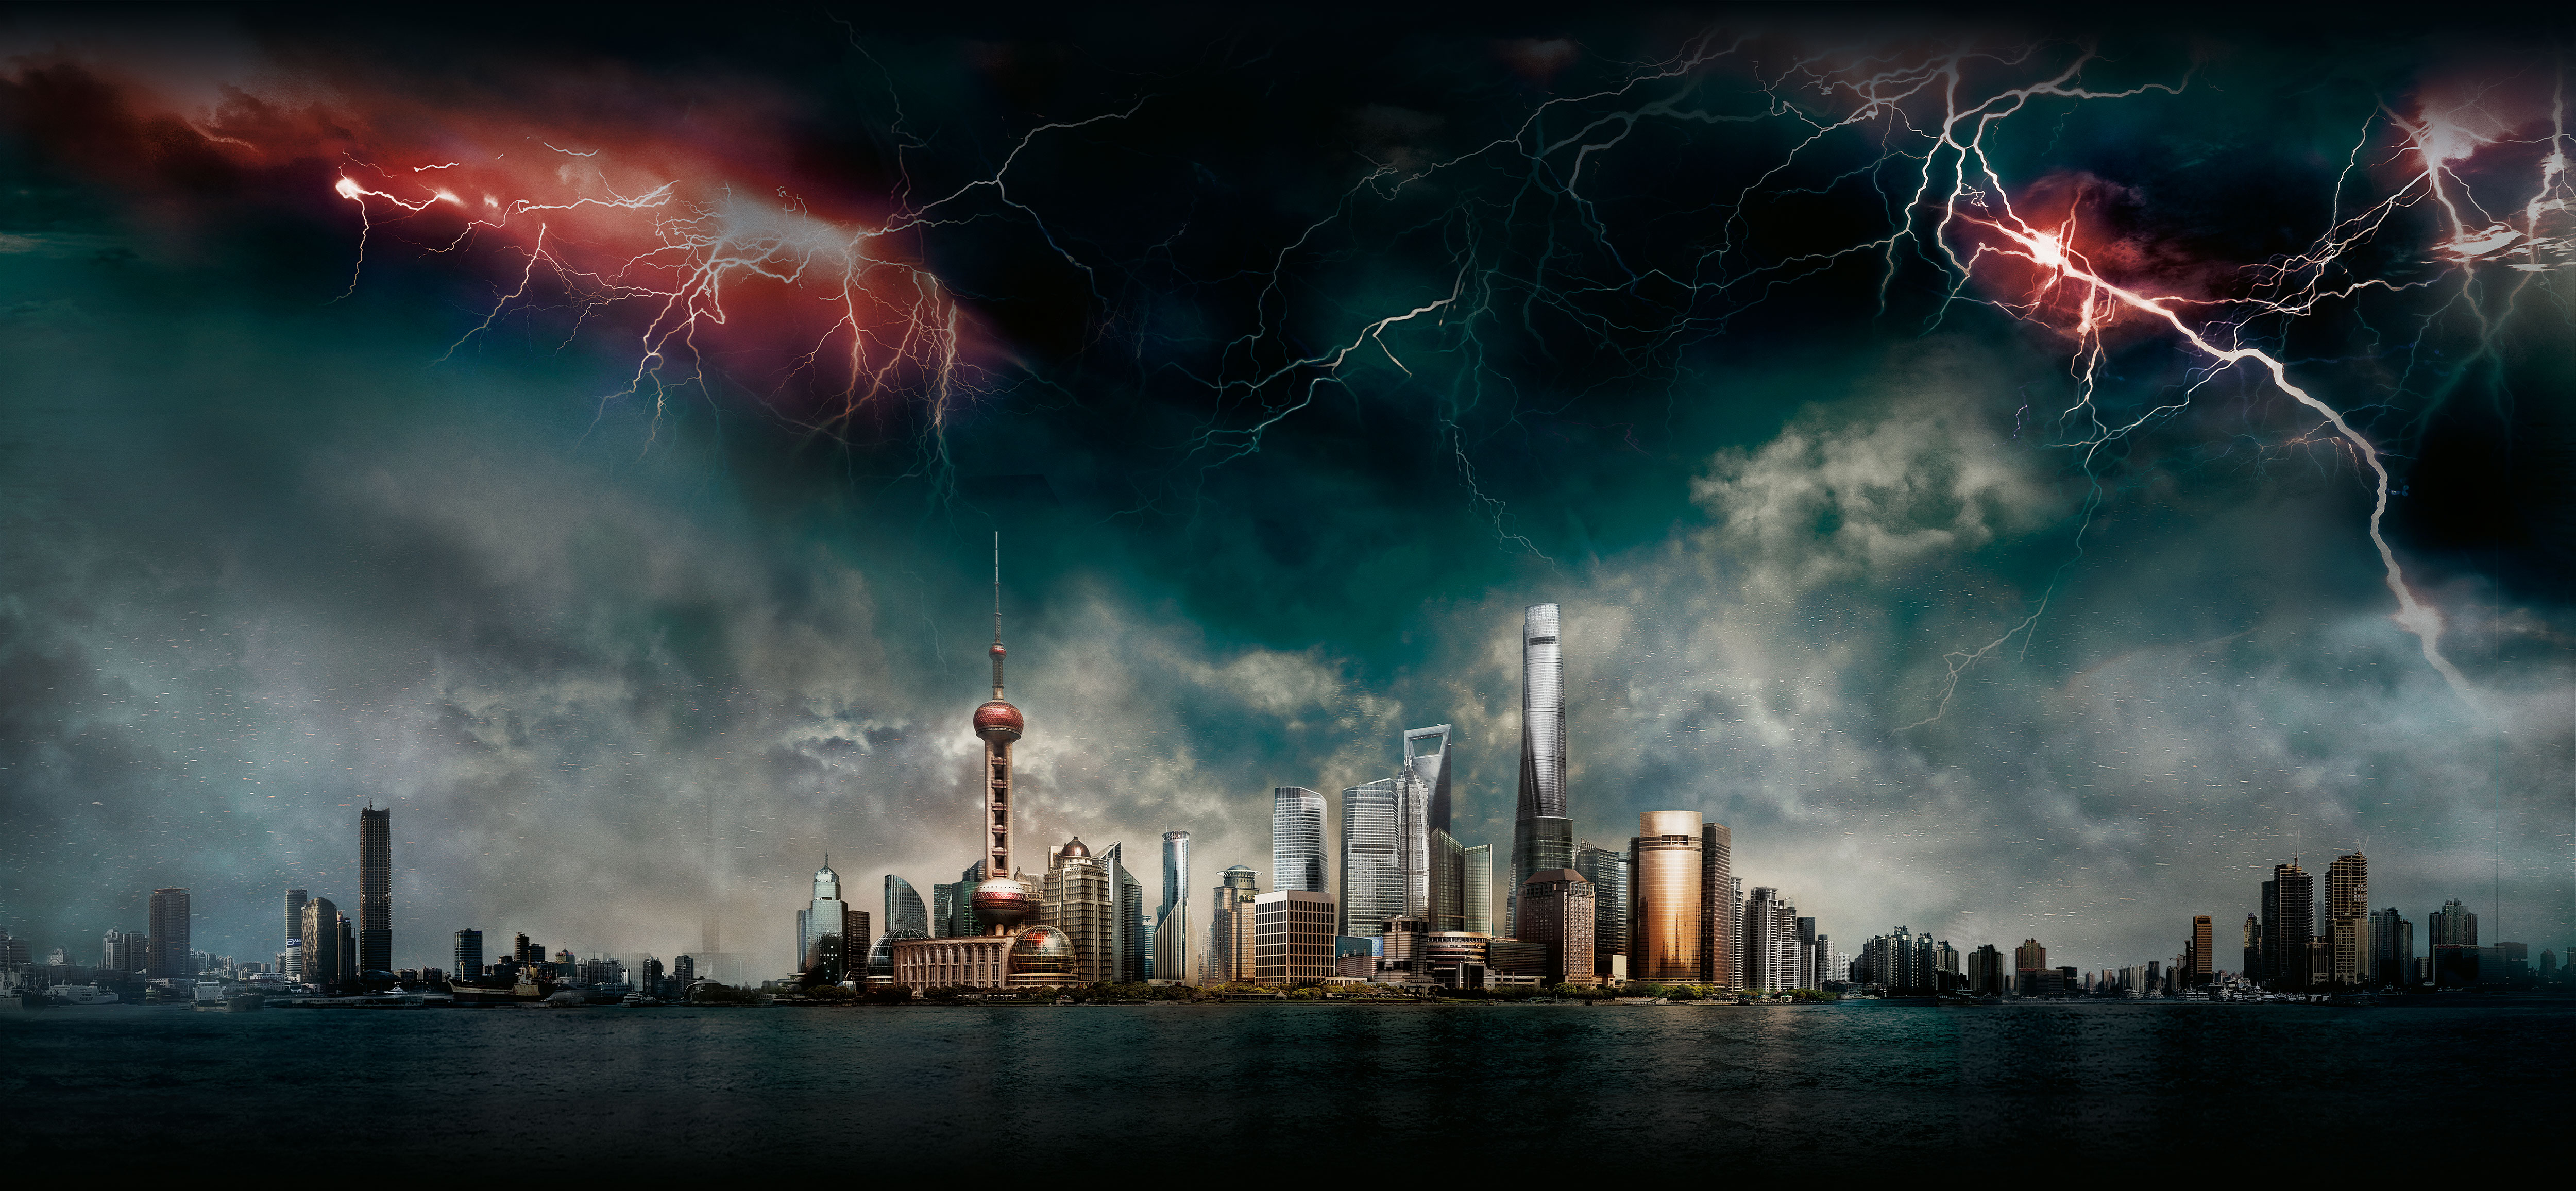 Geostorm 5k, HD Movies, 4k Wallpapers, Images, Backgrounds ...